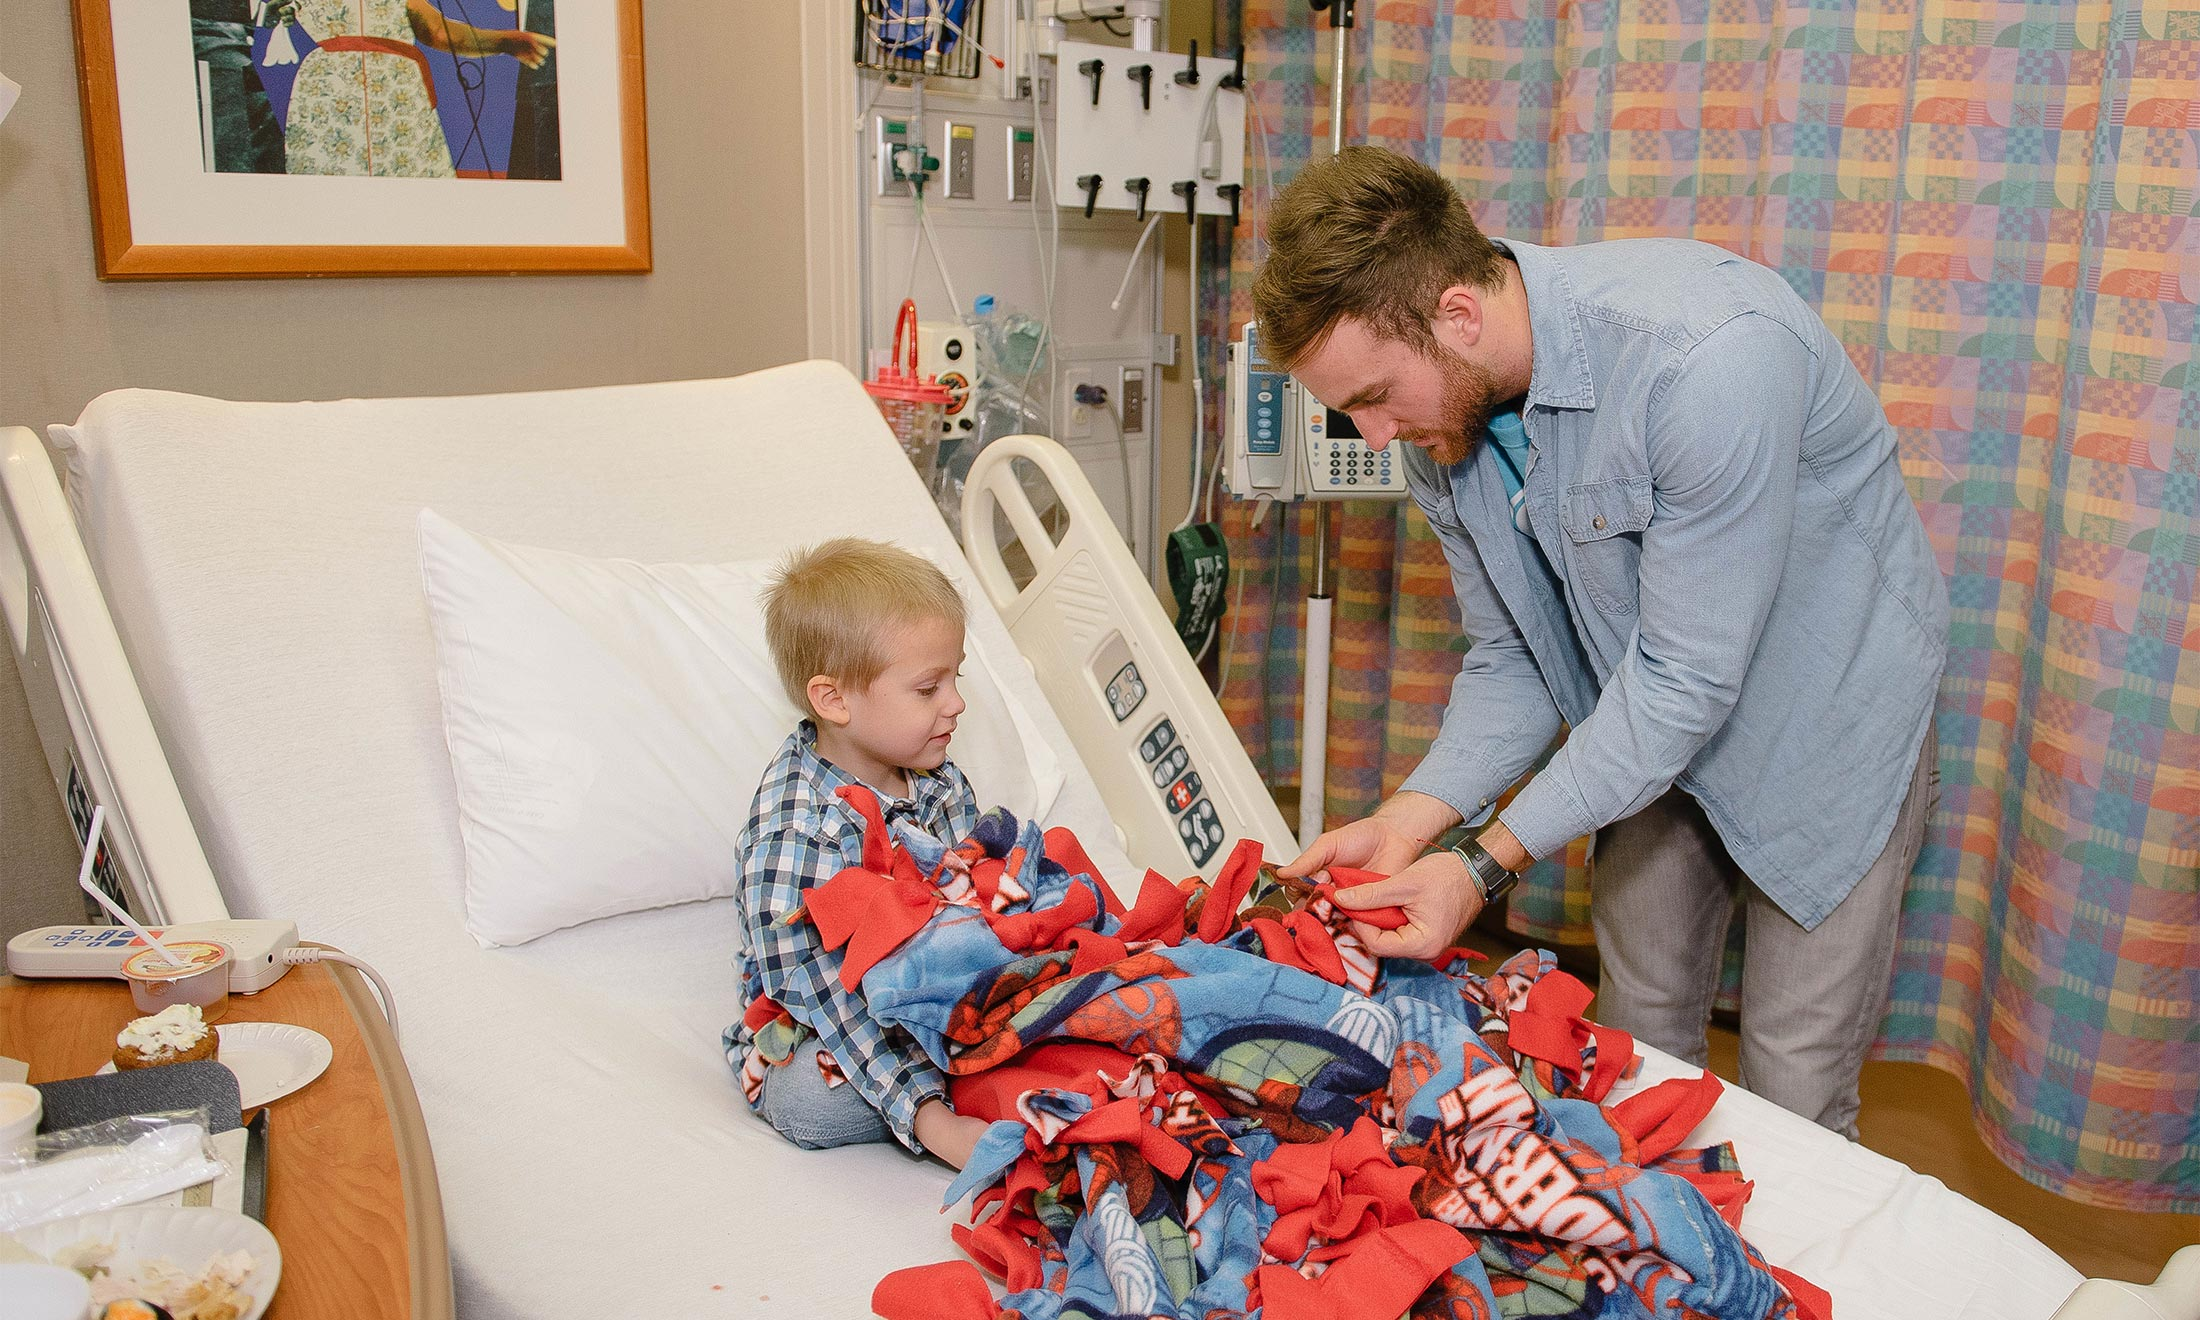 Nick Kristock gives a blanket to a sick child in the hospital